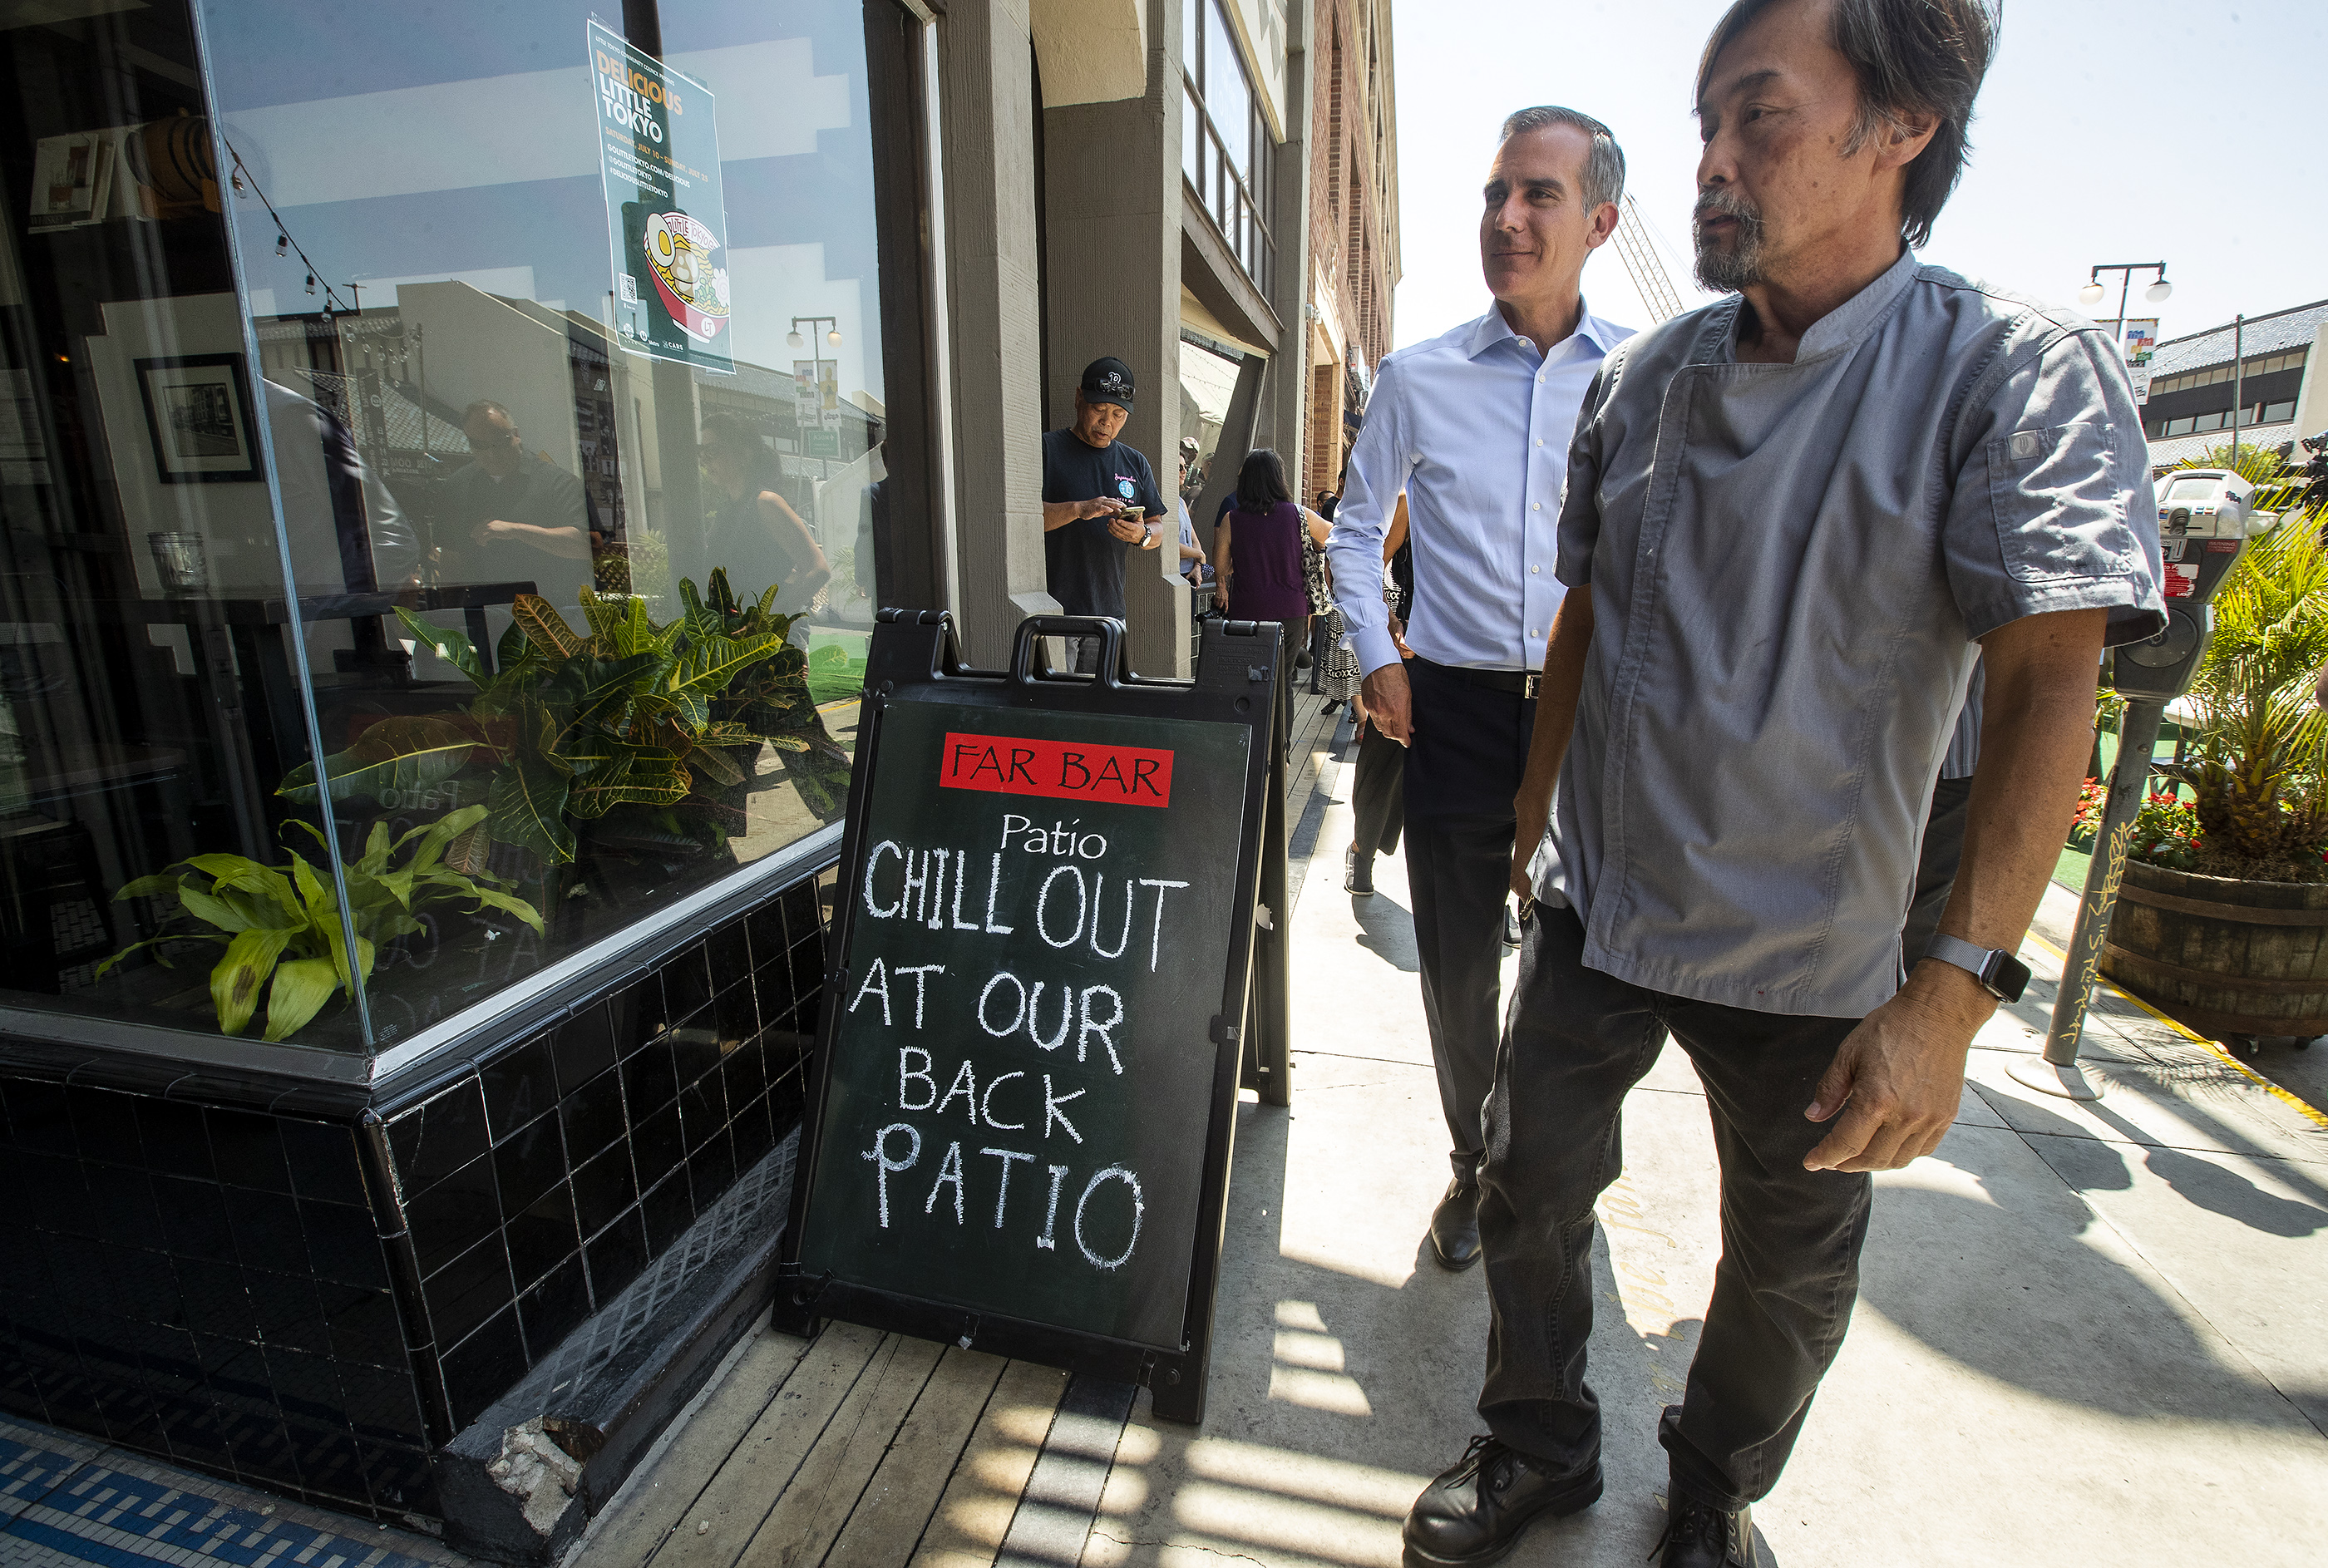 Don Tahara, right, owner of Far Bar restaurant on 1st St. in the Little Tokyo section of Los Angeles, gives a tour of his establishment to Los Angeles Mayor Eric Garcetti.